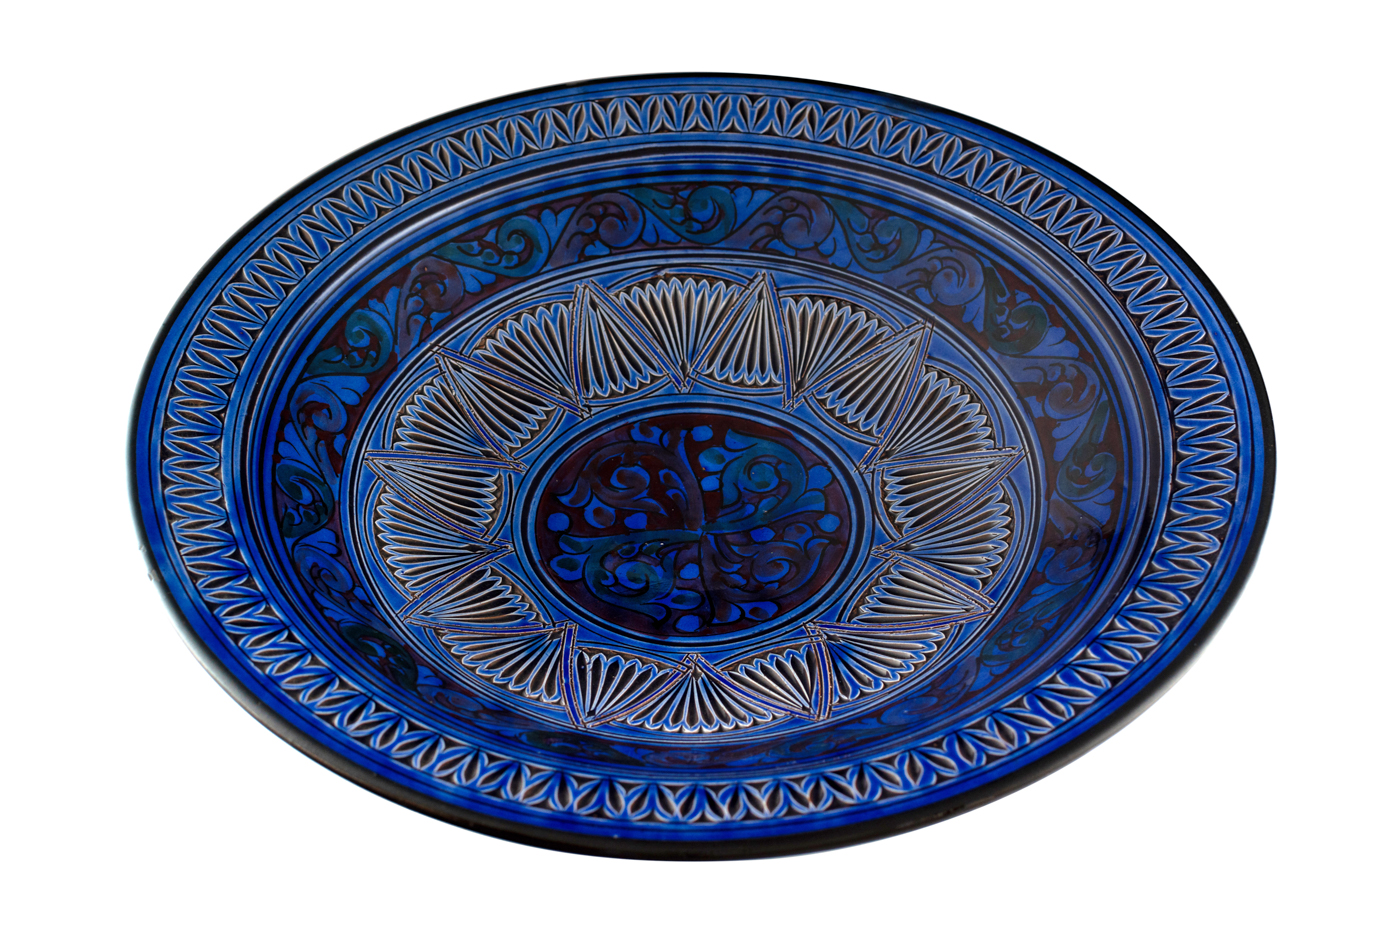 Moroccan ceramic plate carved with geometric arabesque designs-Blue